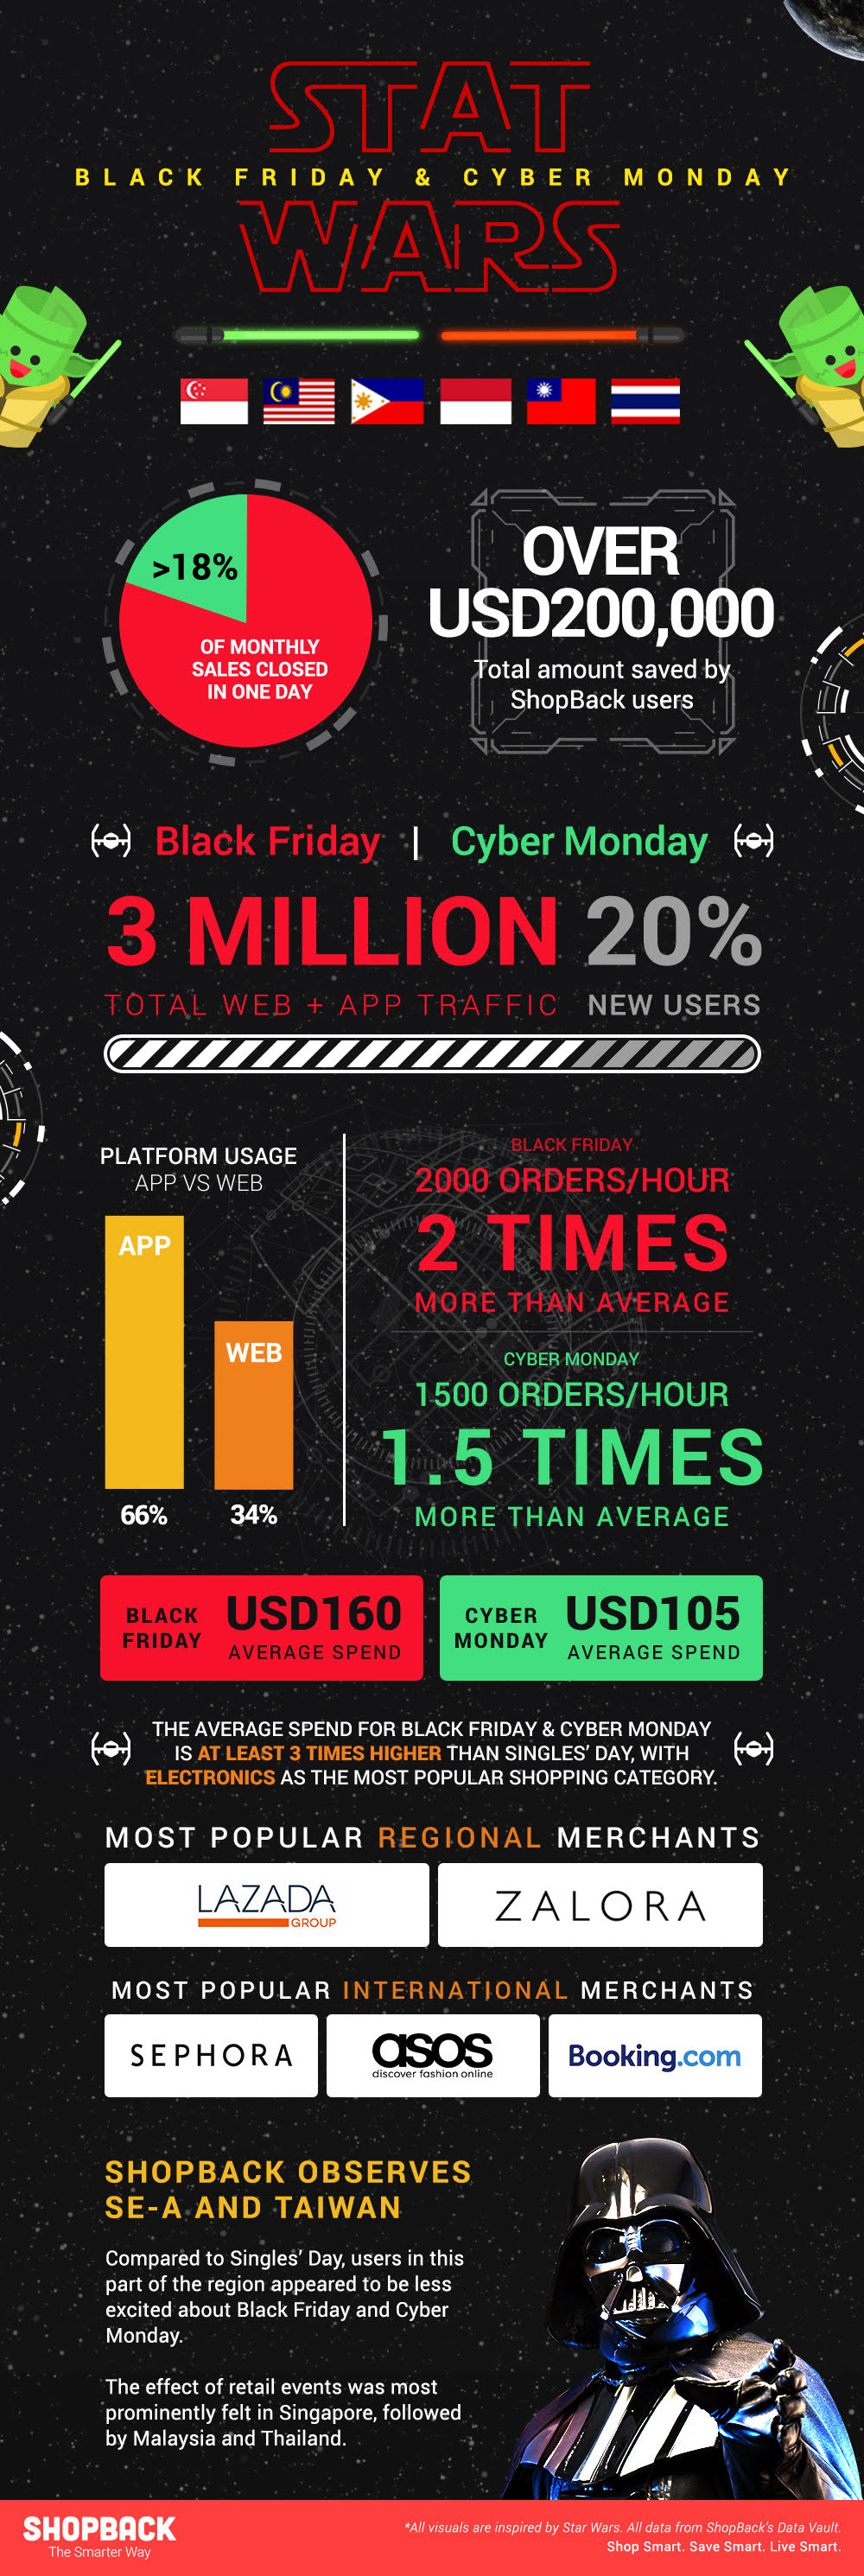 stat wars black friday cyber monday infographic